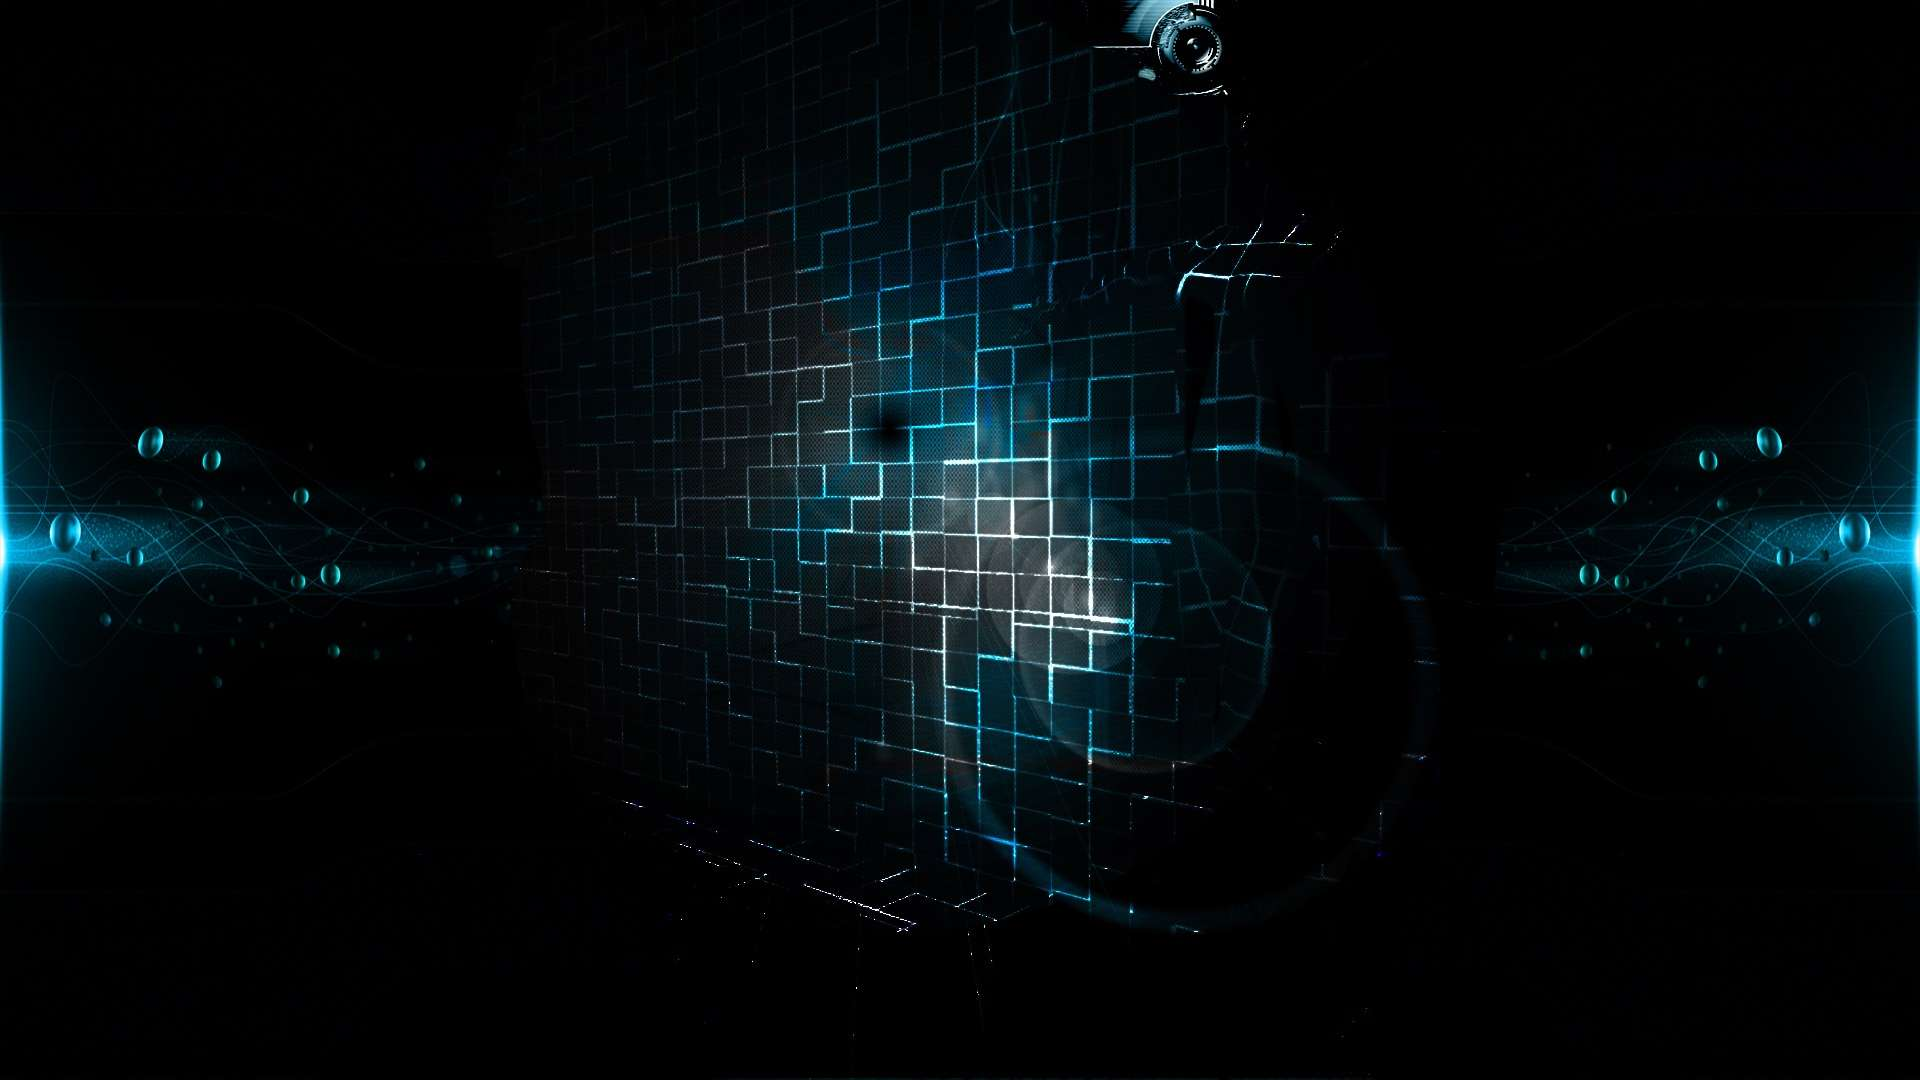 3D Abstract CGI Wallpaper 019